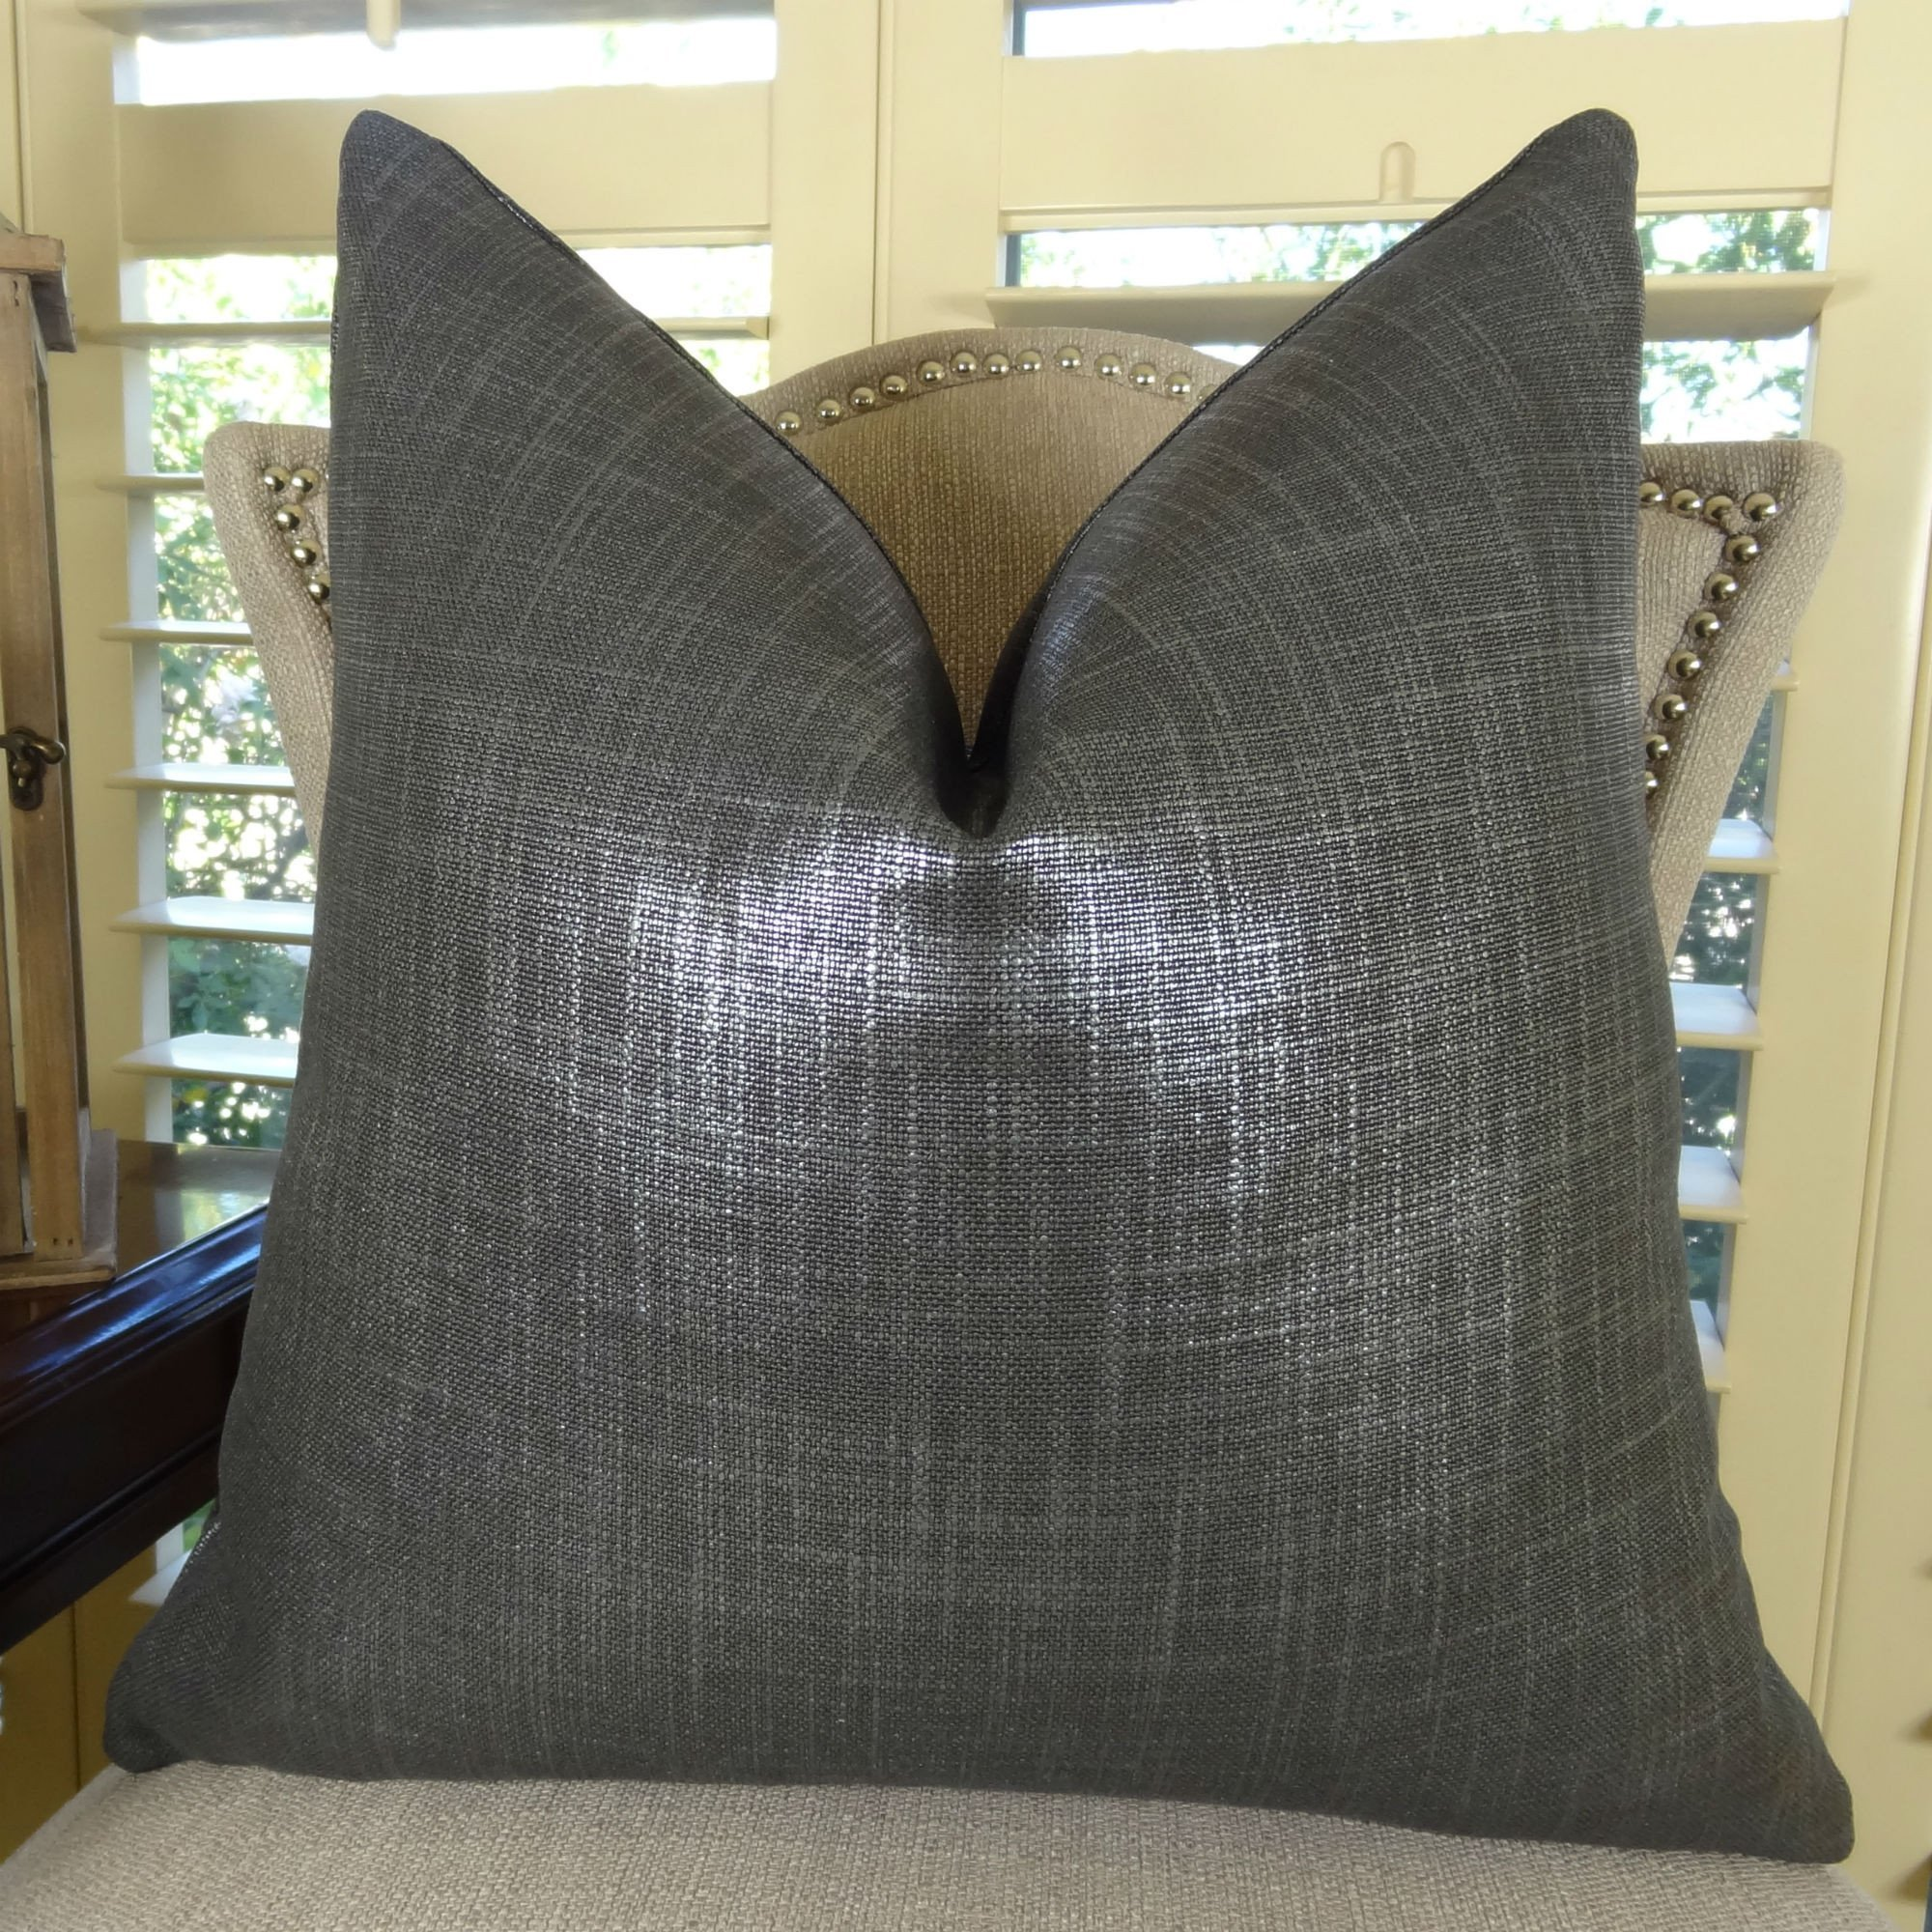 Thomas Collection Metallic Charcoal Gray HandThrow Pillow, Grey Designer Modern Sofa Pillow, COVER ONLY, NO INSERT, Made in America, 11374